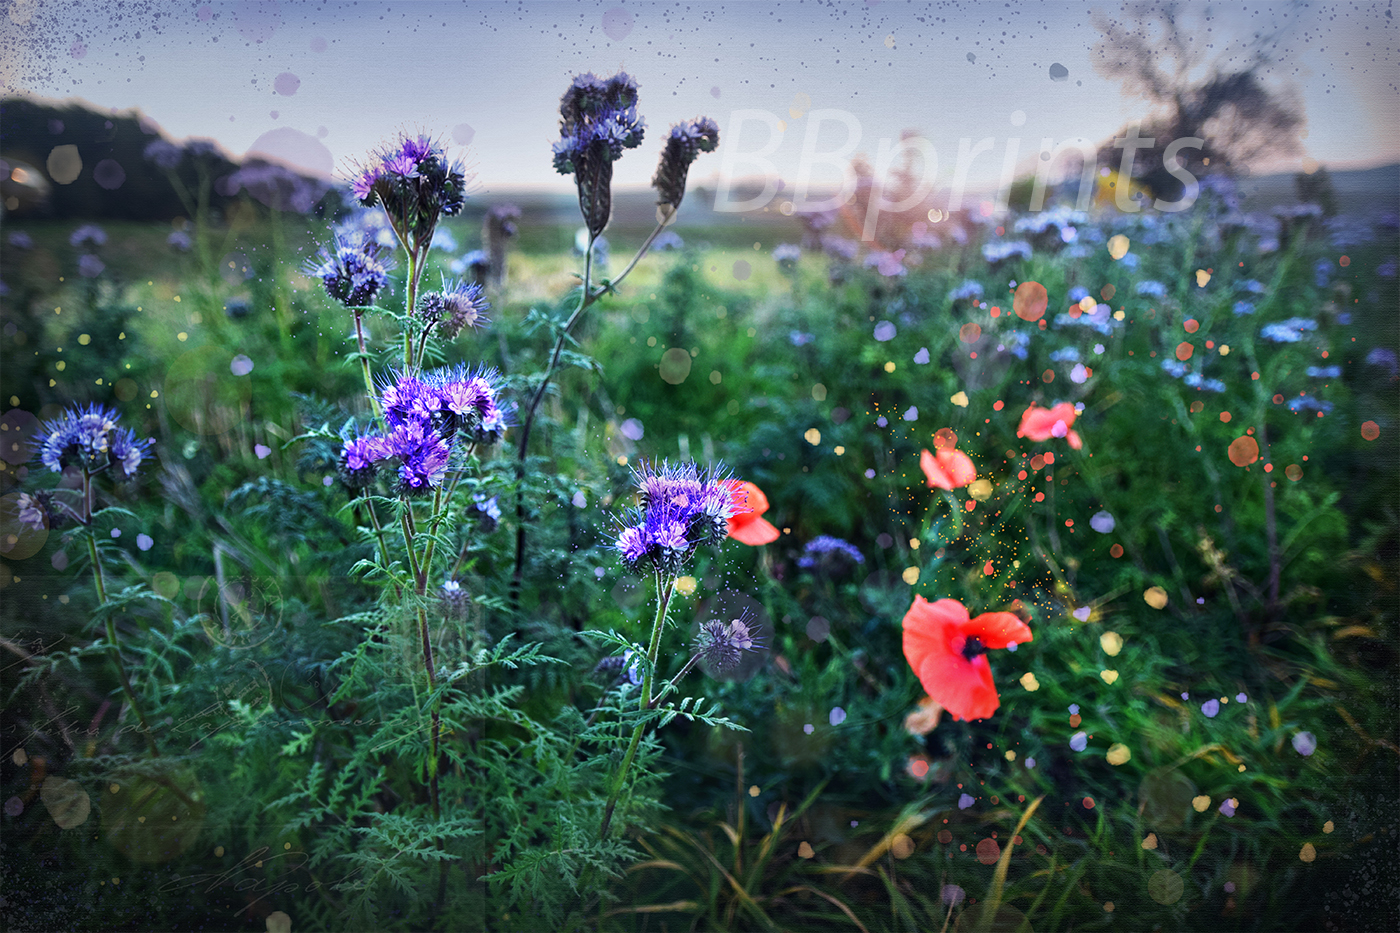 Nature photo, floral photo, summer photo, Wildflowers example image 1